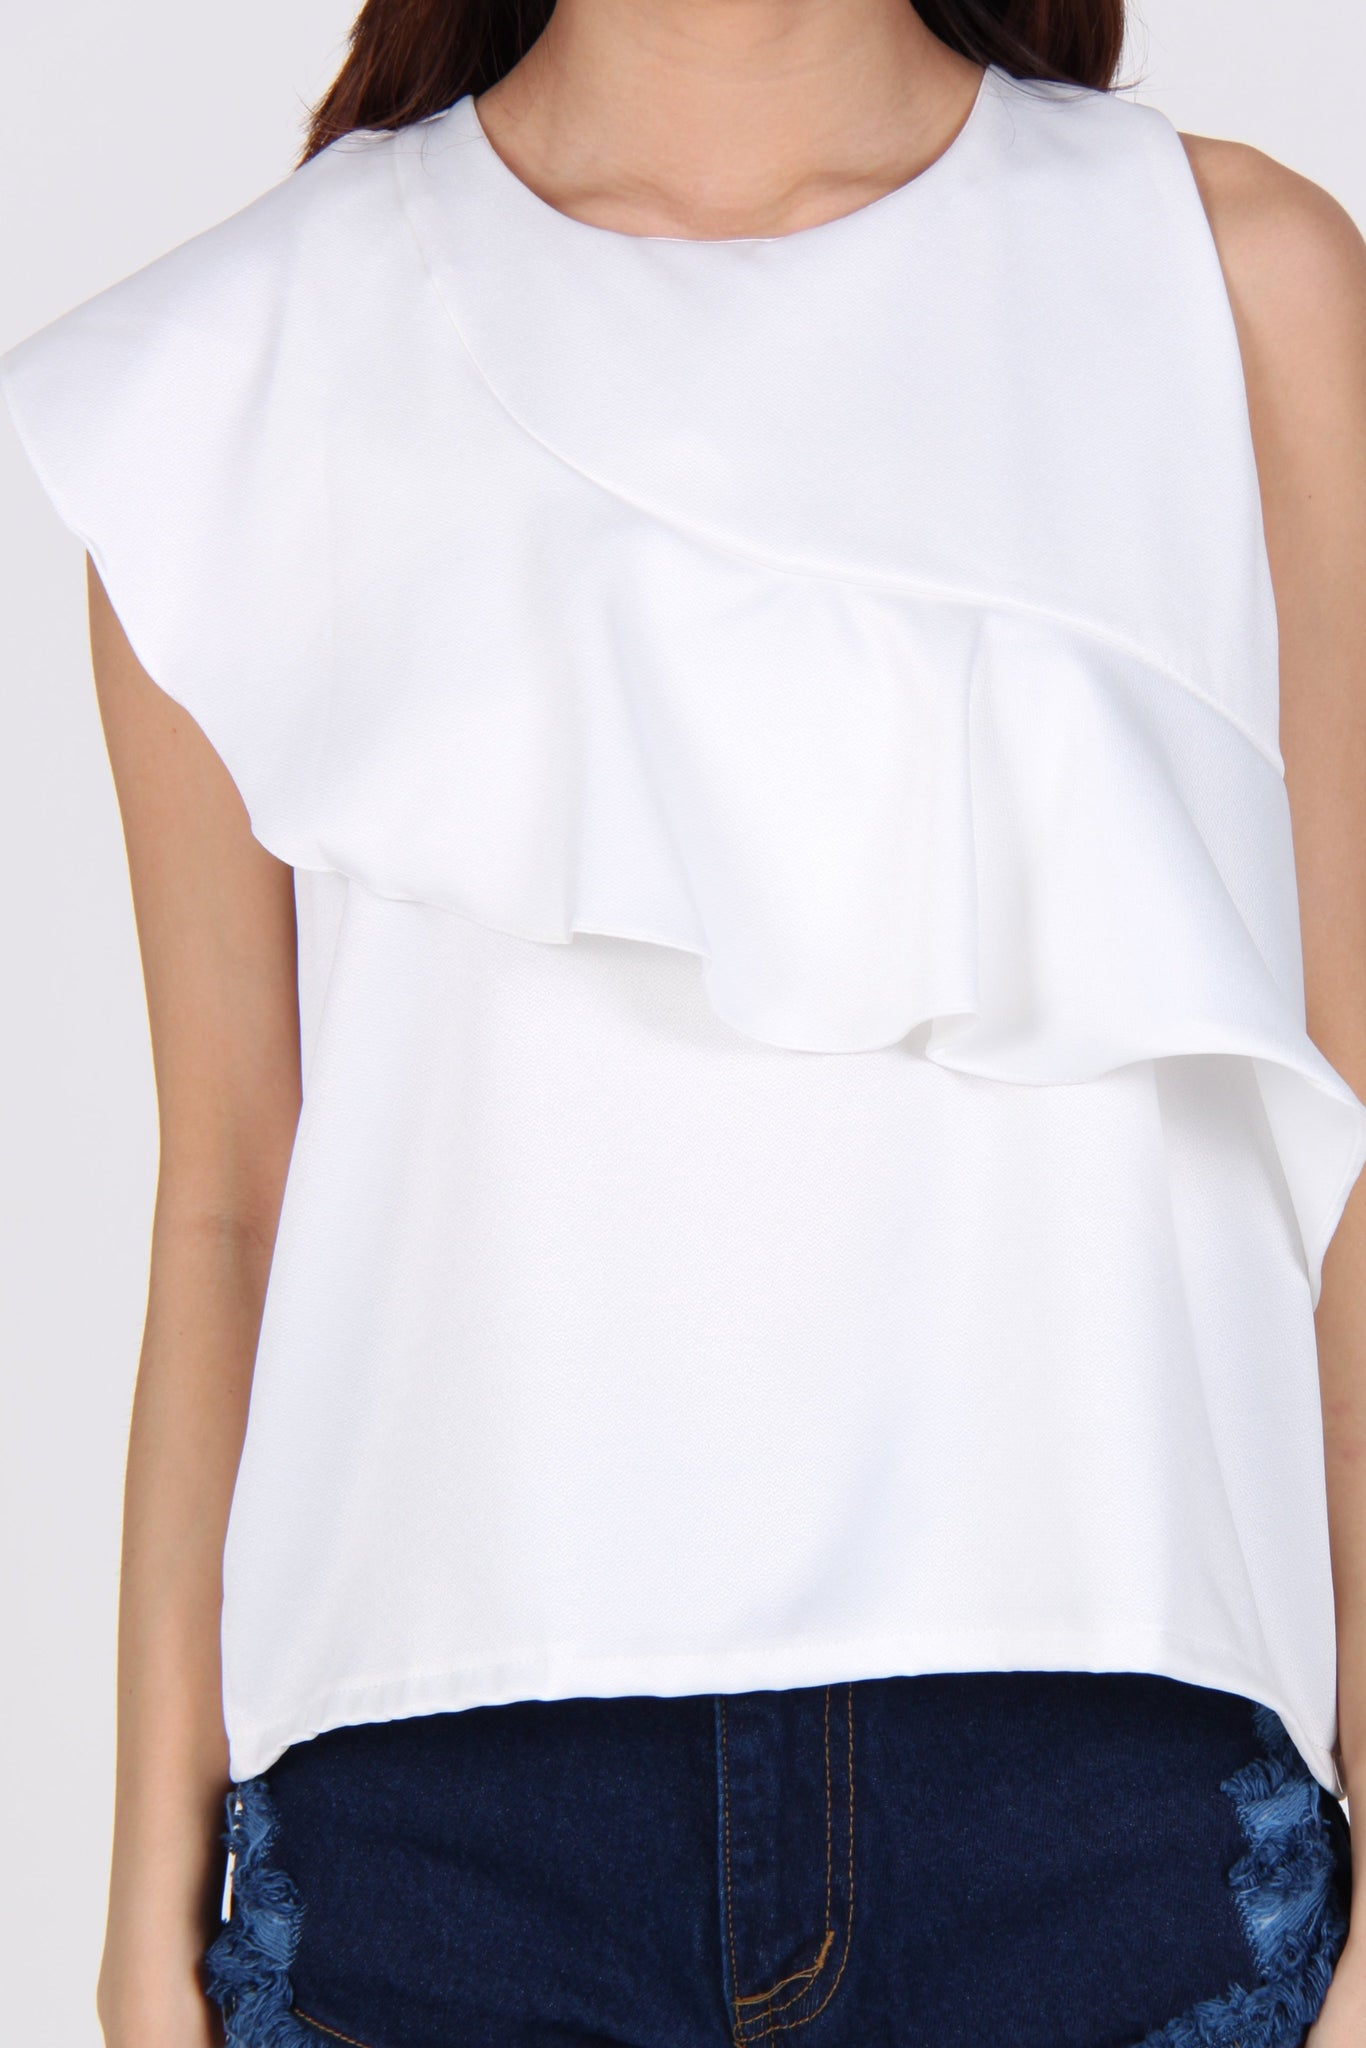 Diagonal Ruffles Sleeveless Top in White